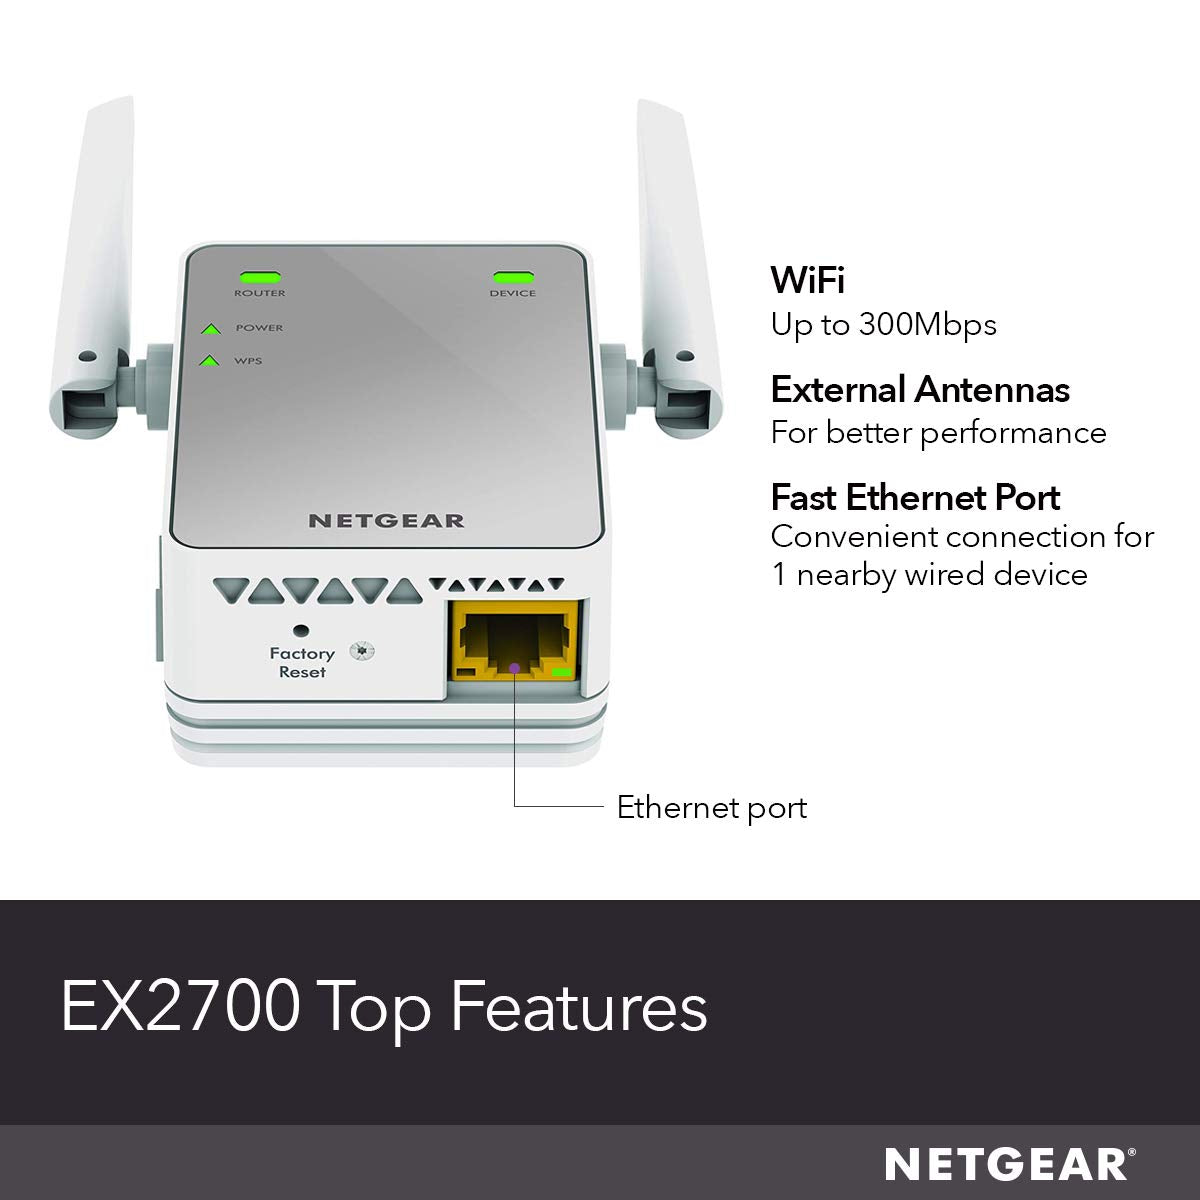 NETGEAR Wifi Range Extender EX3700 - Coverage Up to 1000 Sq.ft. and 15 devices with AC750 Dual Wireless Signal Booster & Repeater